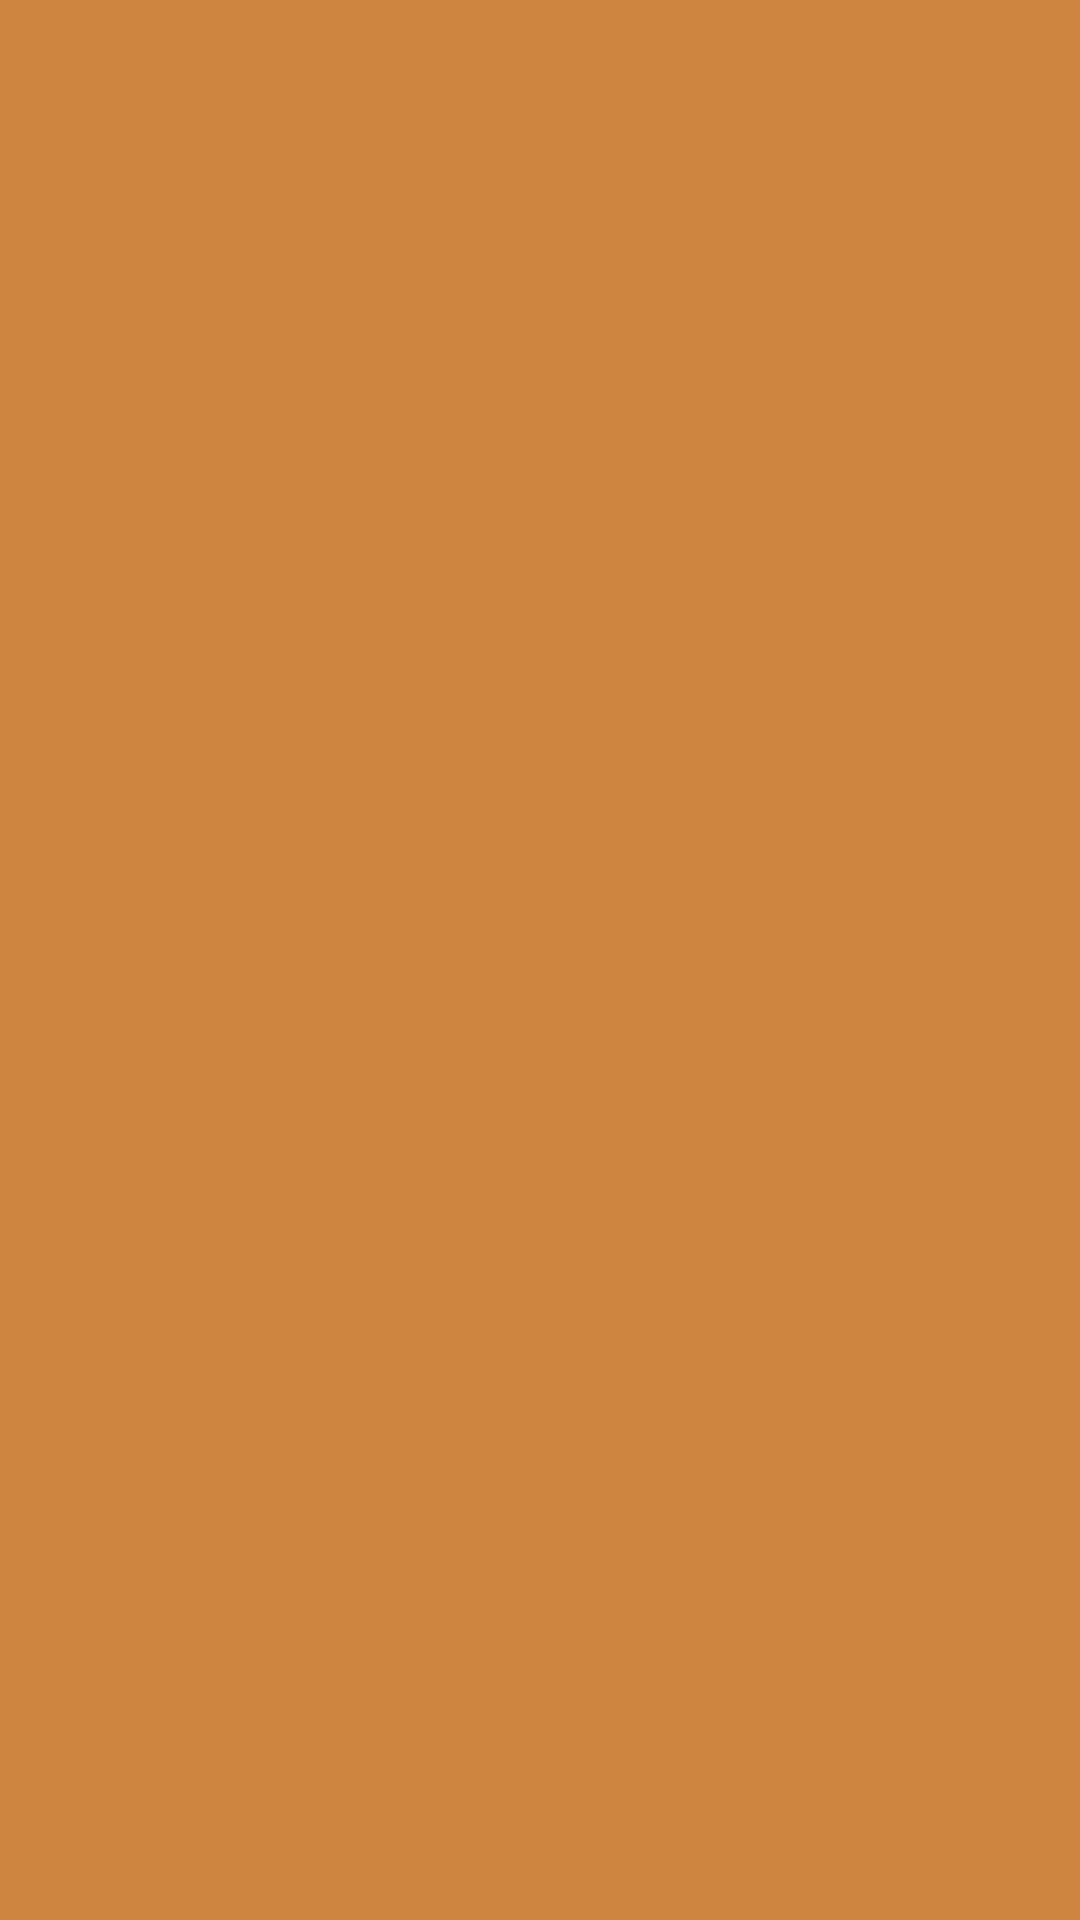 1080x1920 Peru Solid Color Background